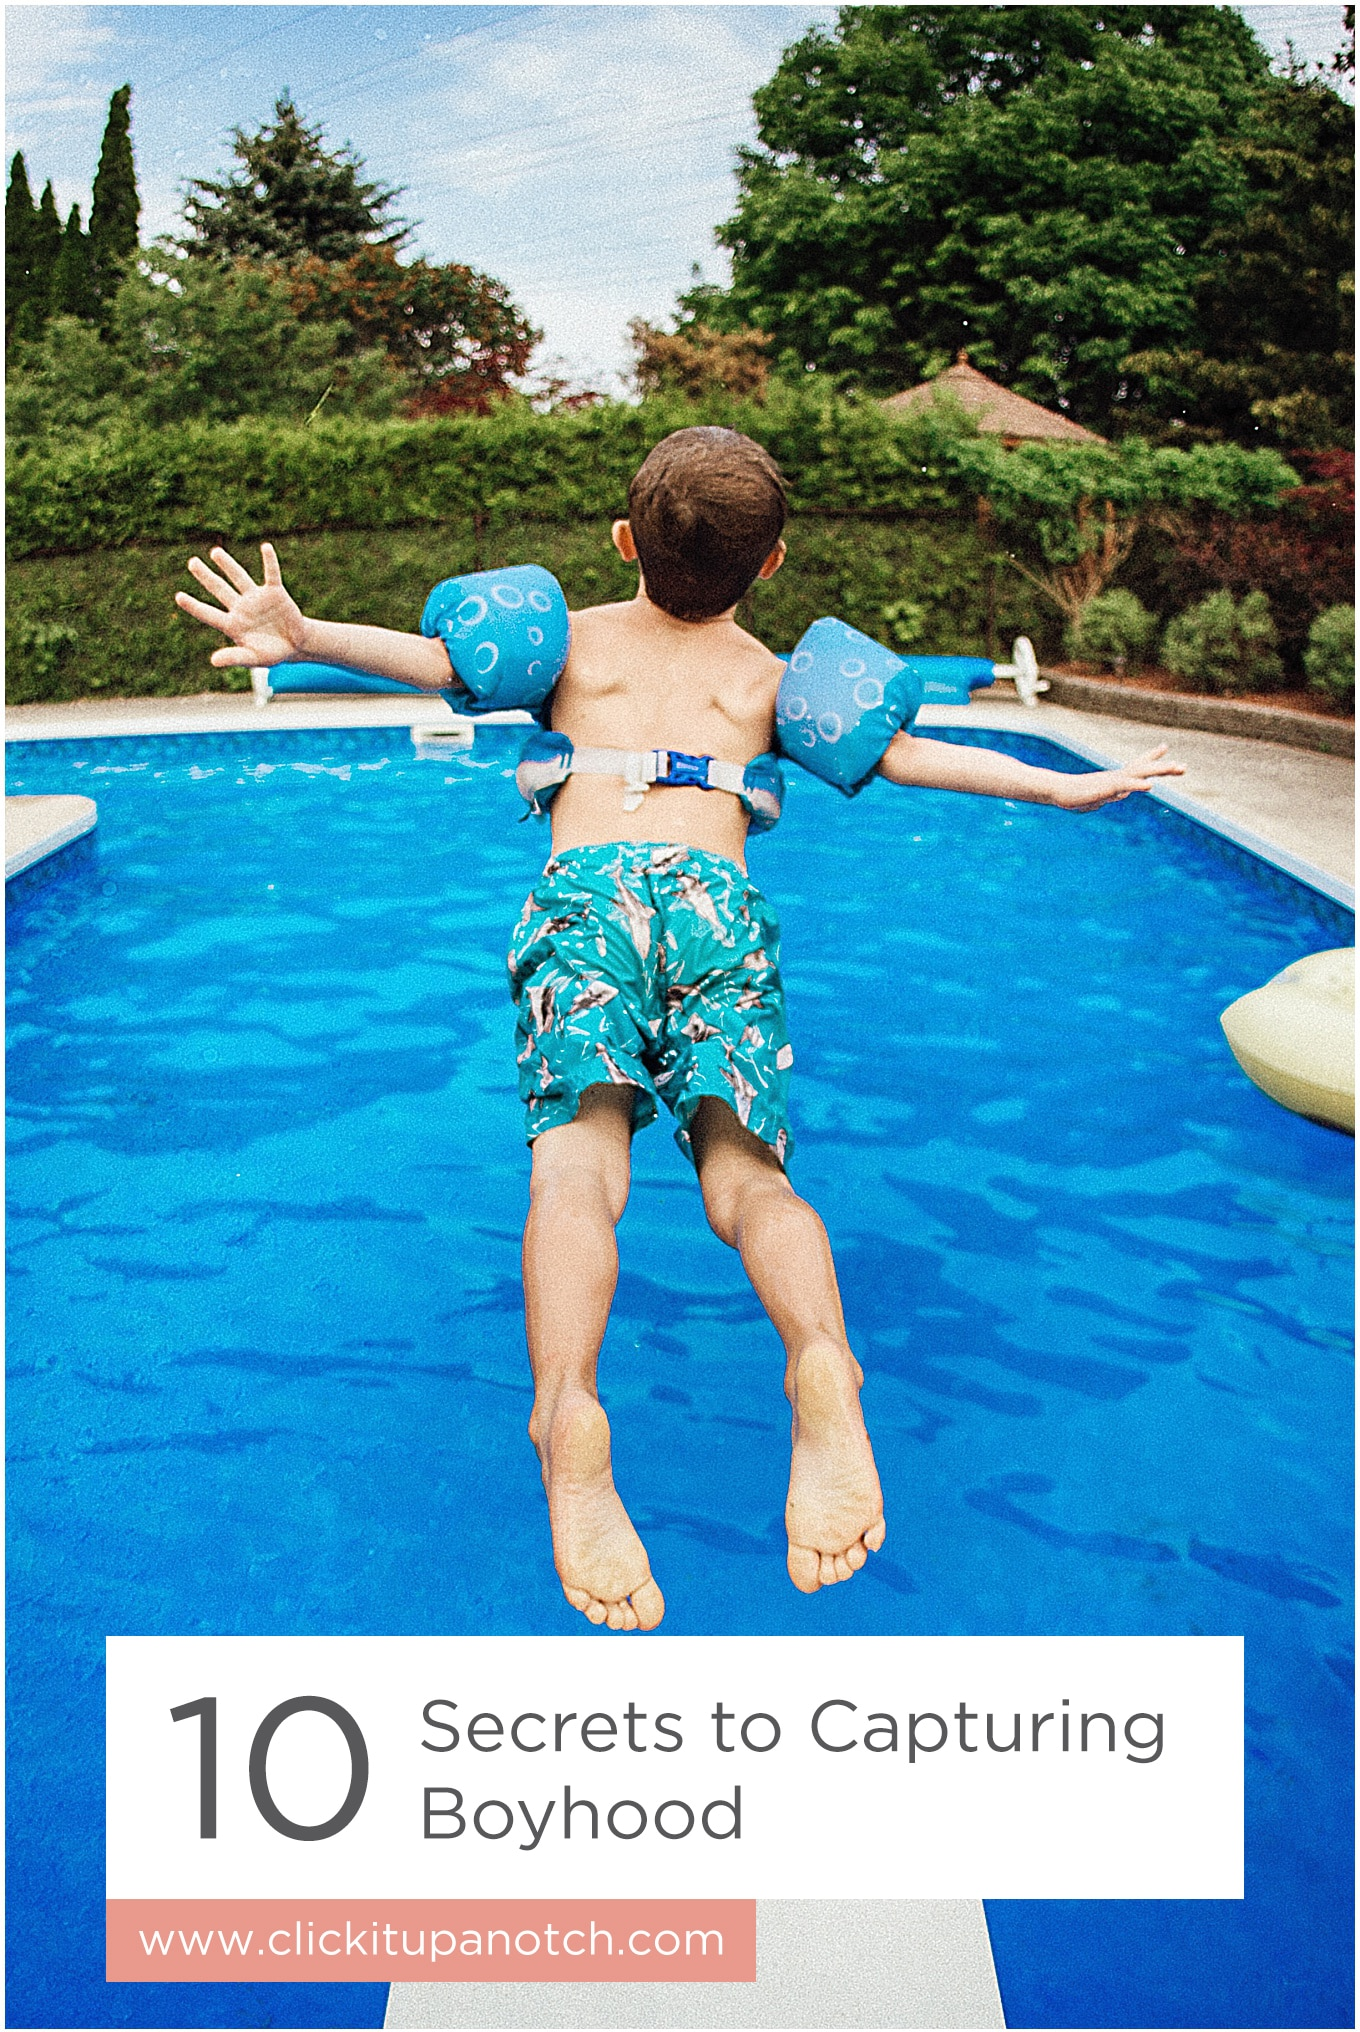 """This is a must read for all boy moms! Read - """"10 Secrets to Capturing Boyhood"""""""